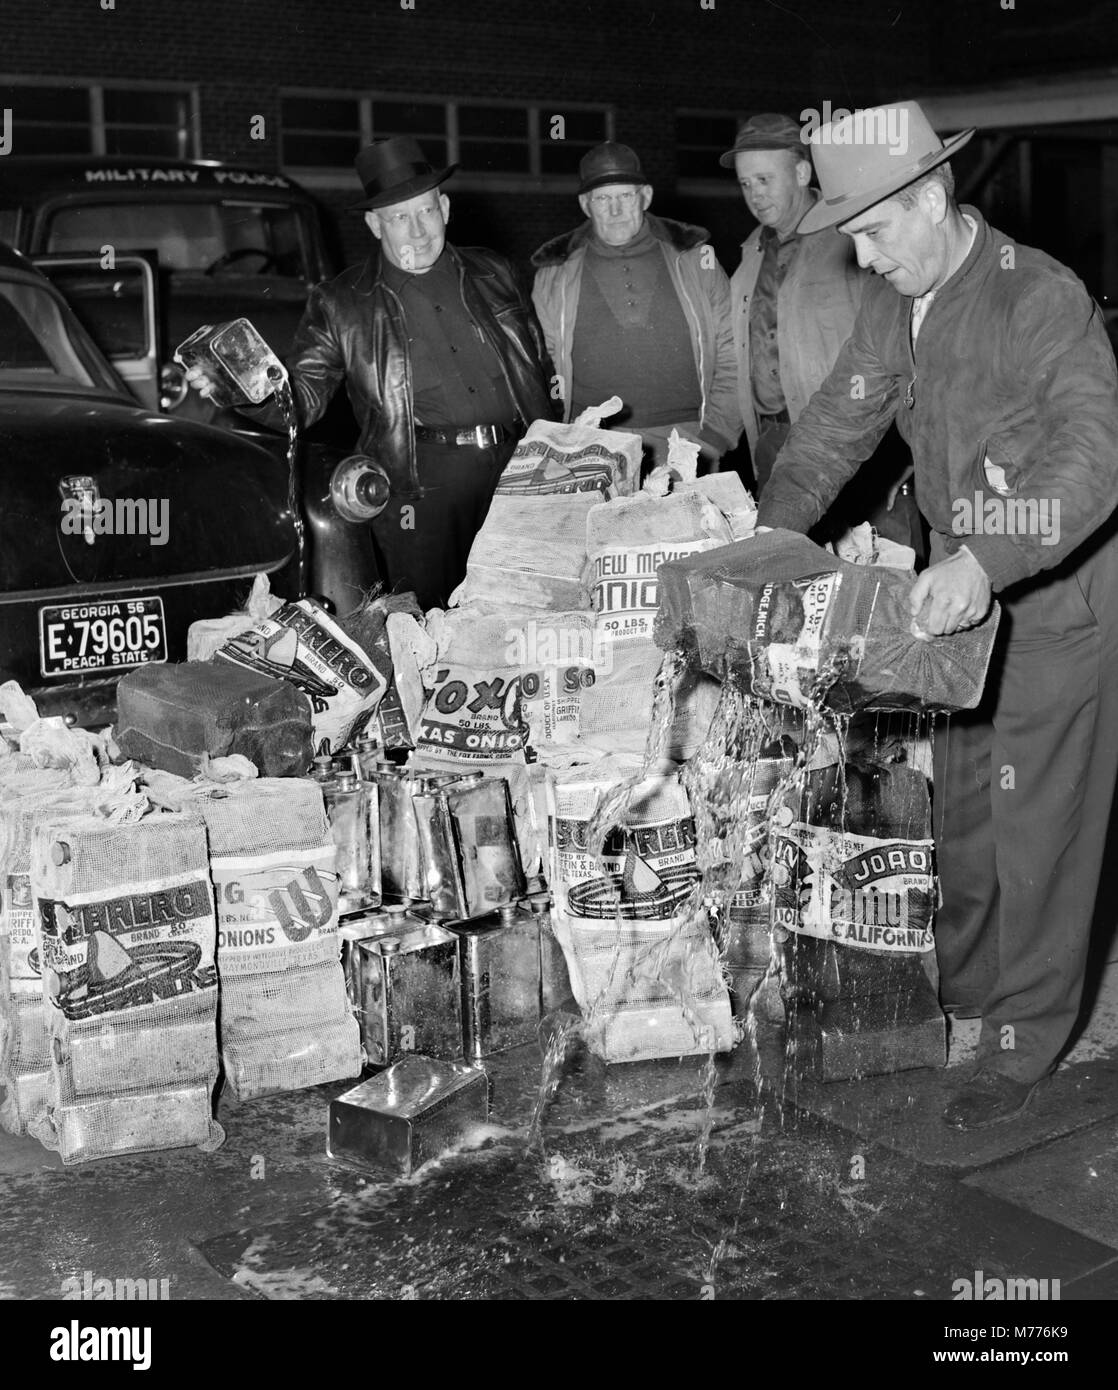 Police empty a stash of illegal moonshine liquor into a street drain in the US state of Georgia in 1957. - Stock Image